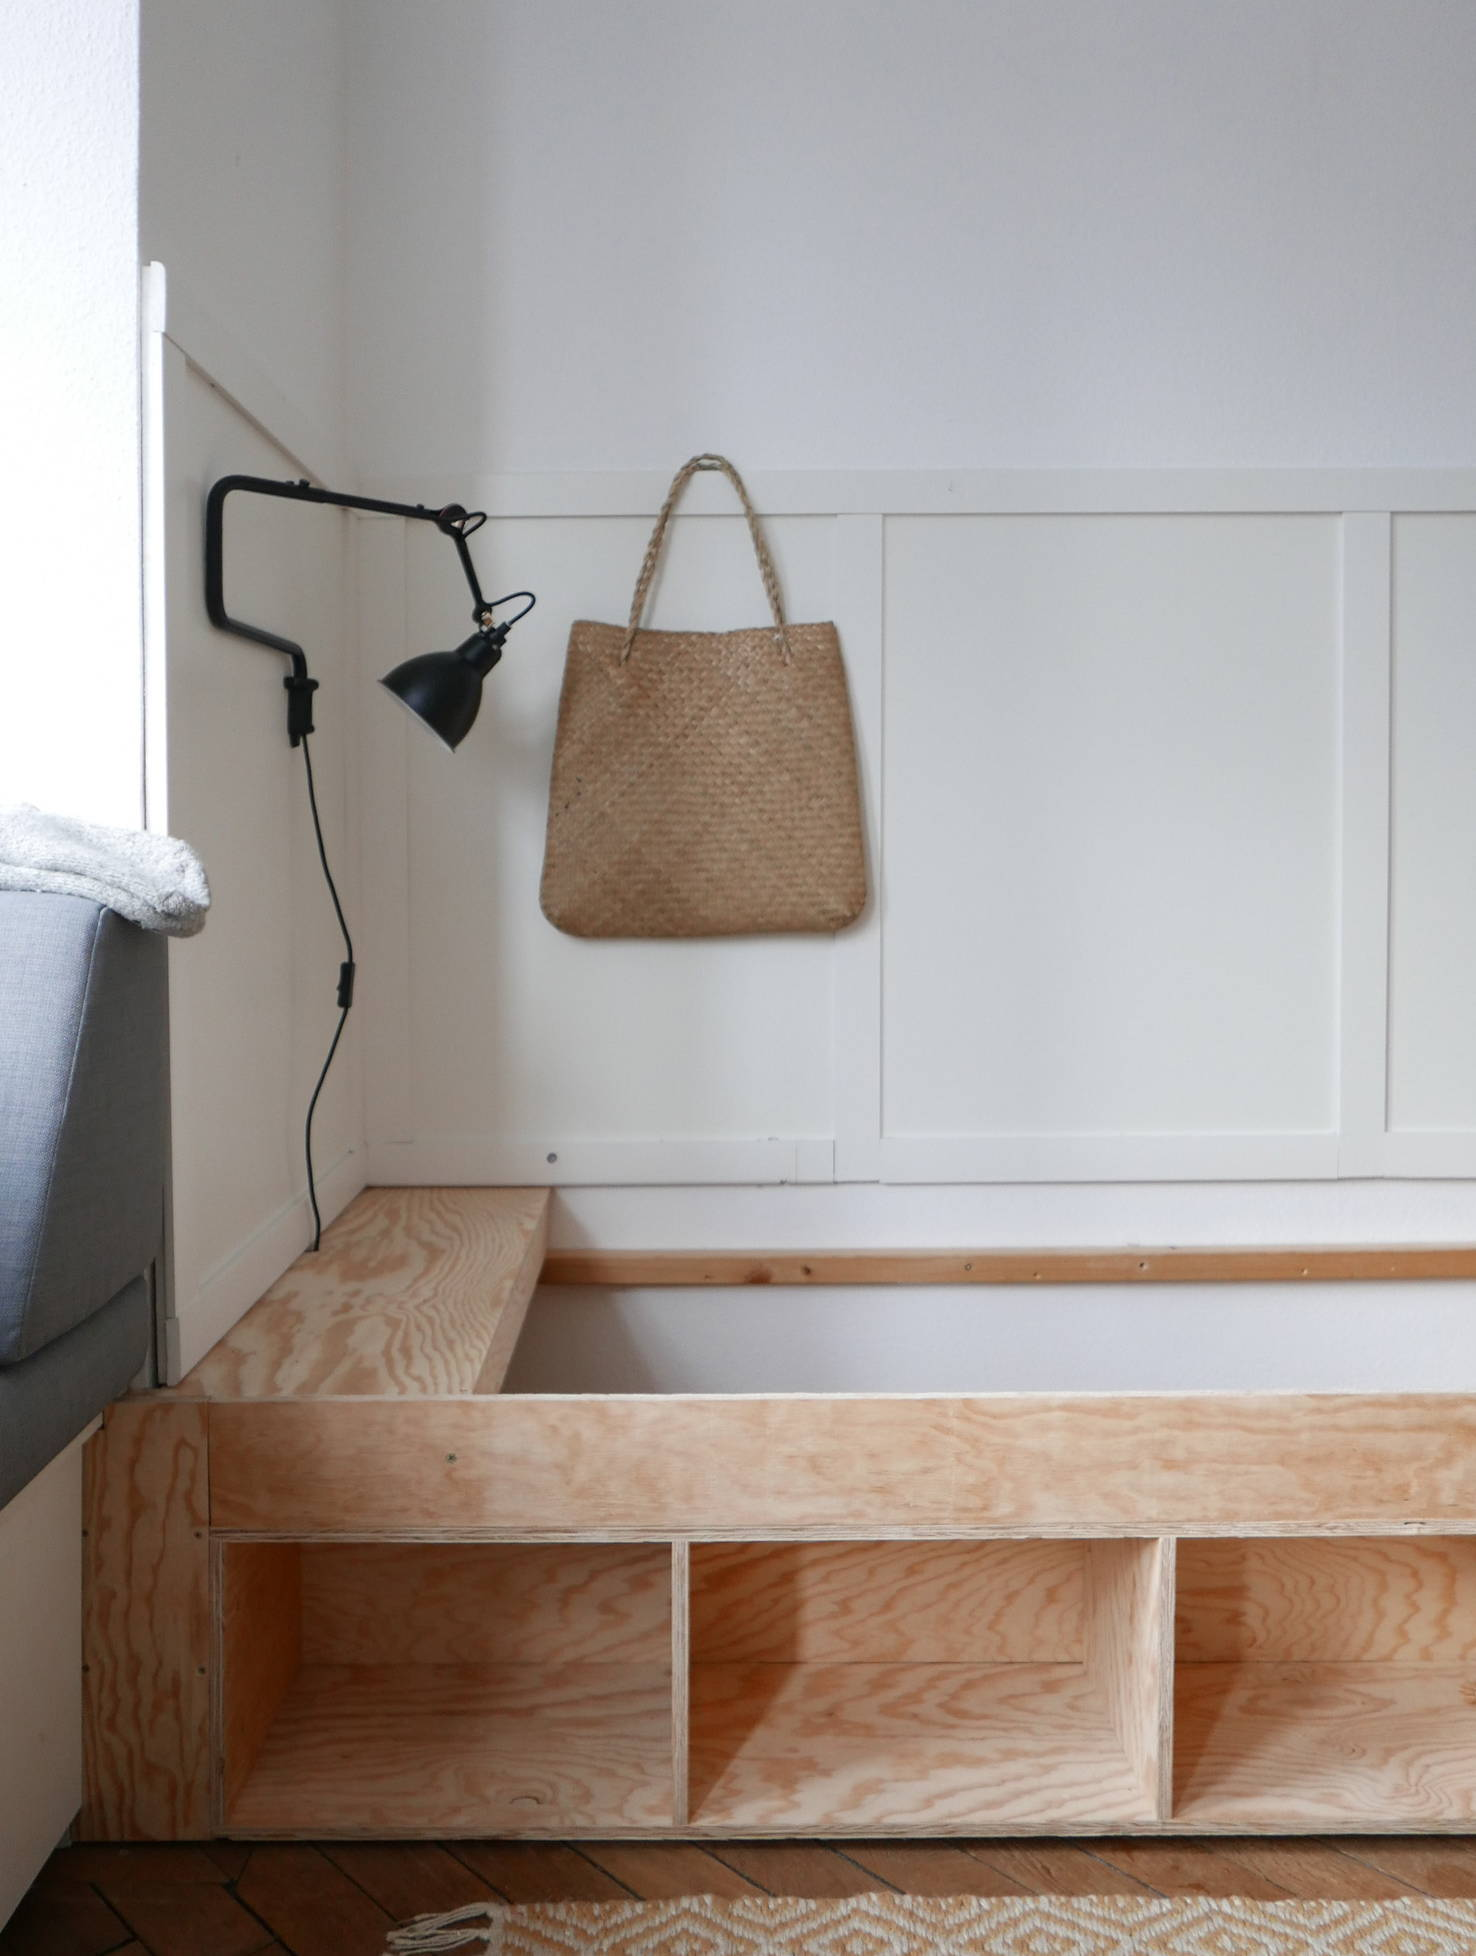 Guest bed construction with maritime pine and basket